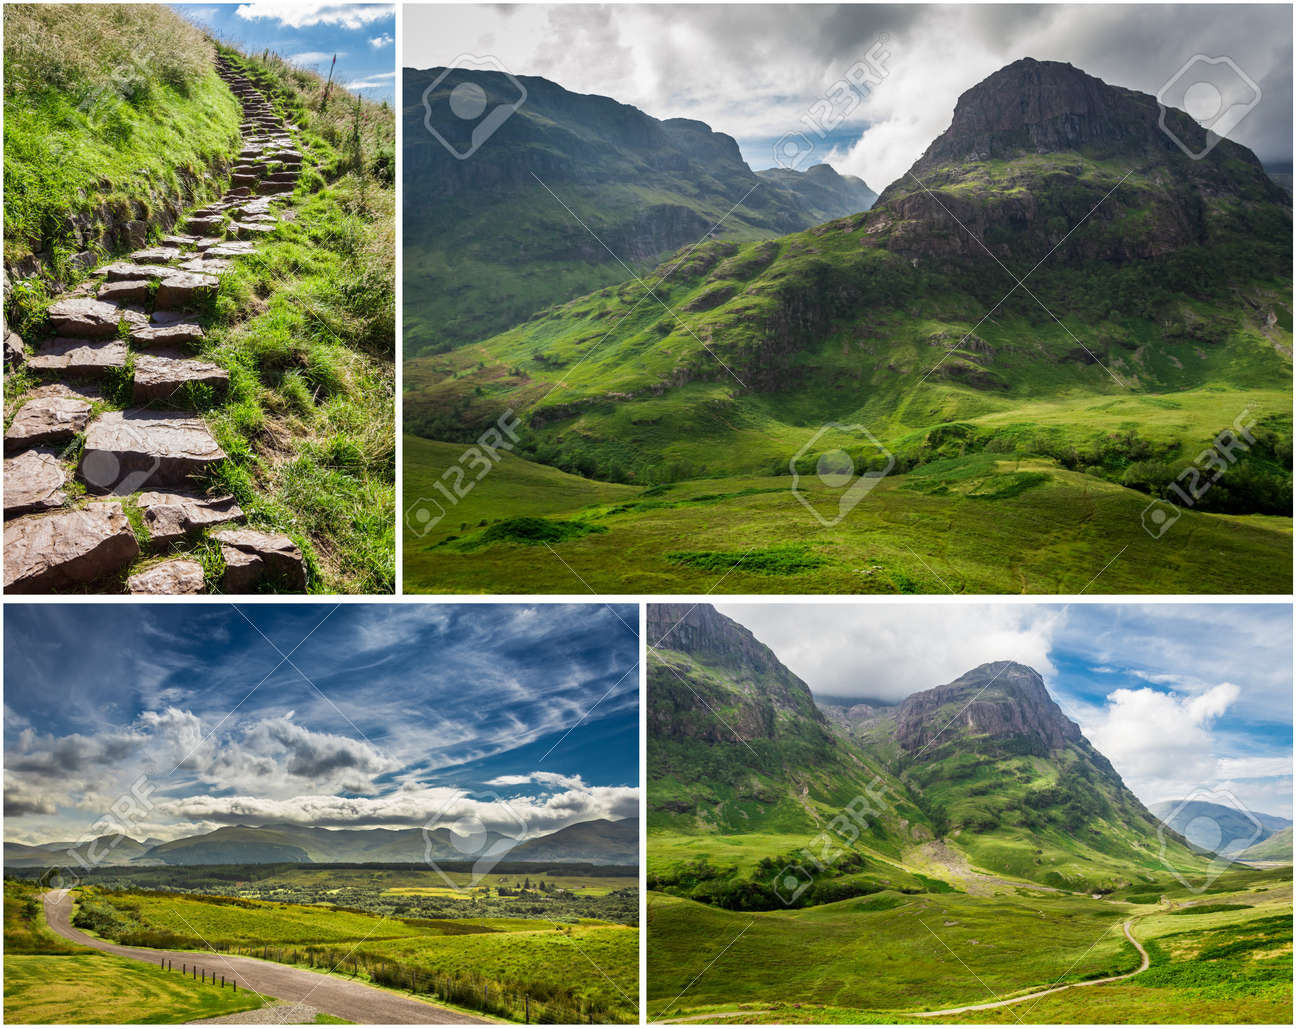 Postcard from the mountains of Scotland Stock Photo - 17234667